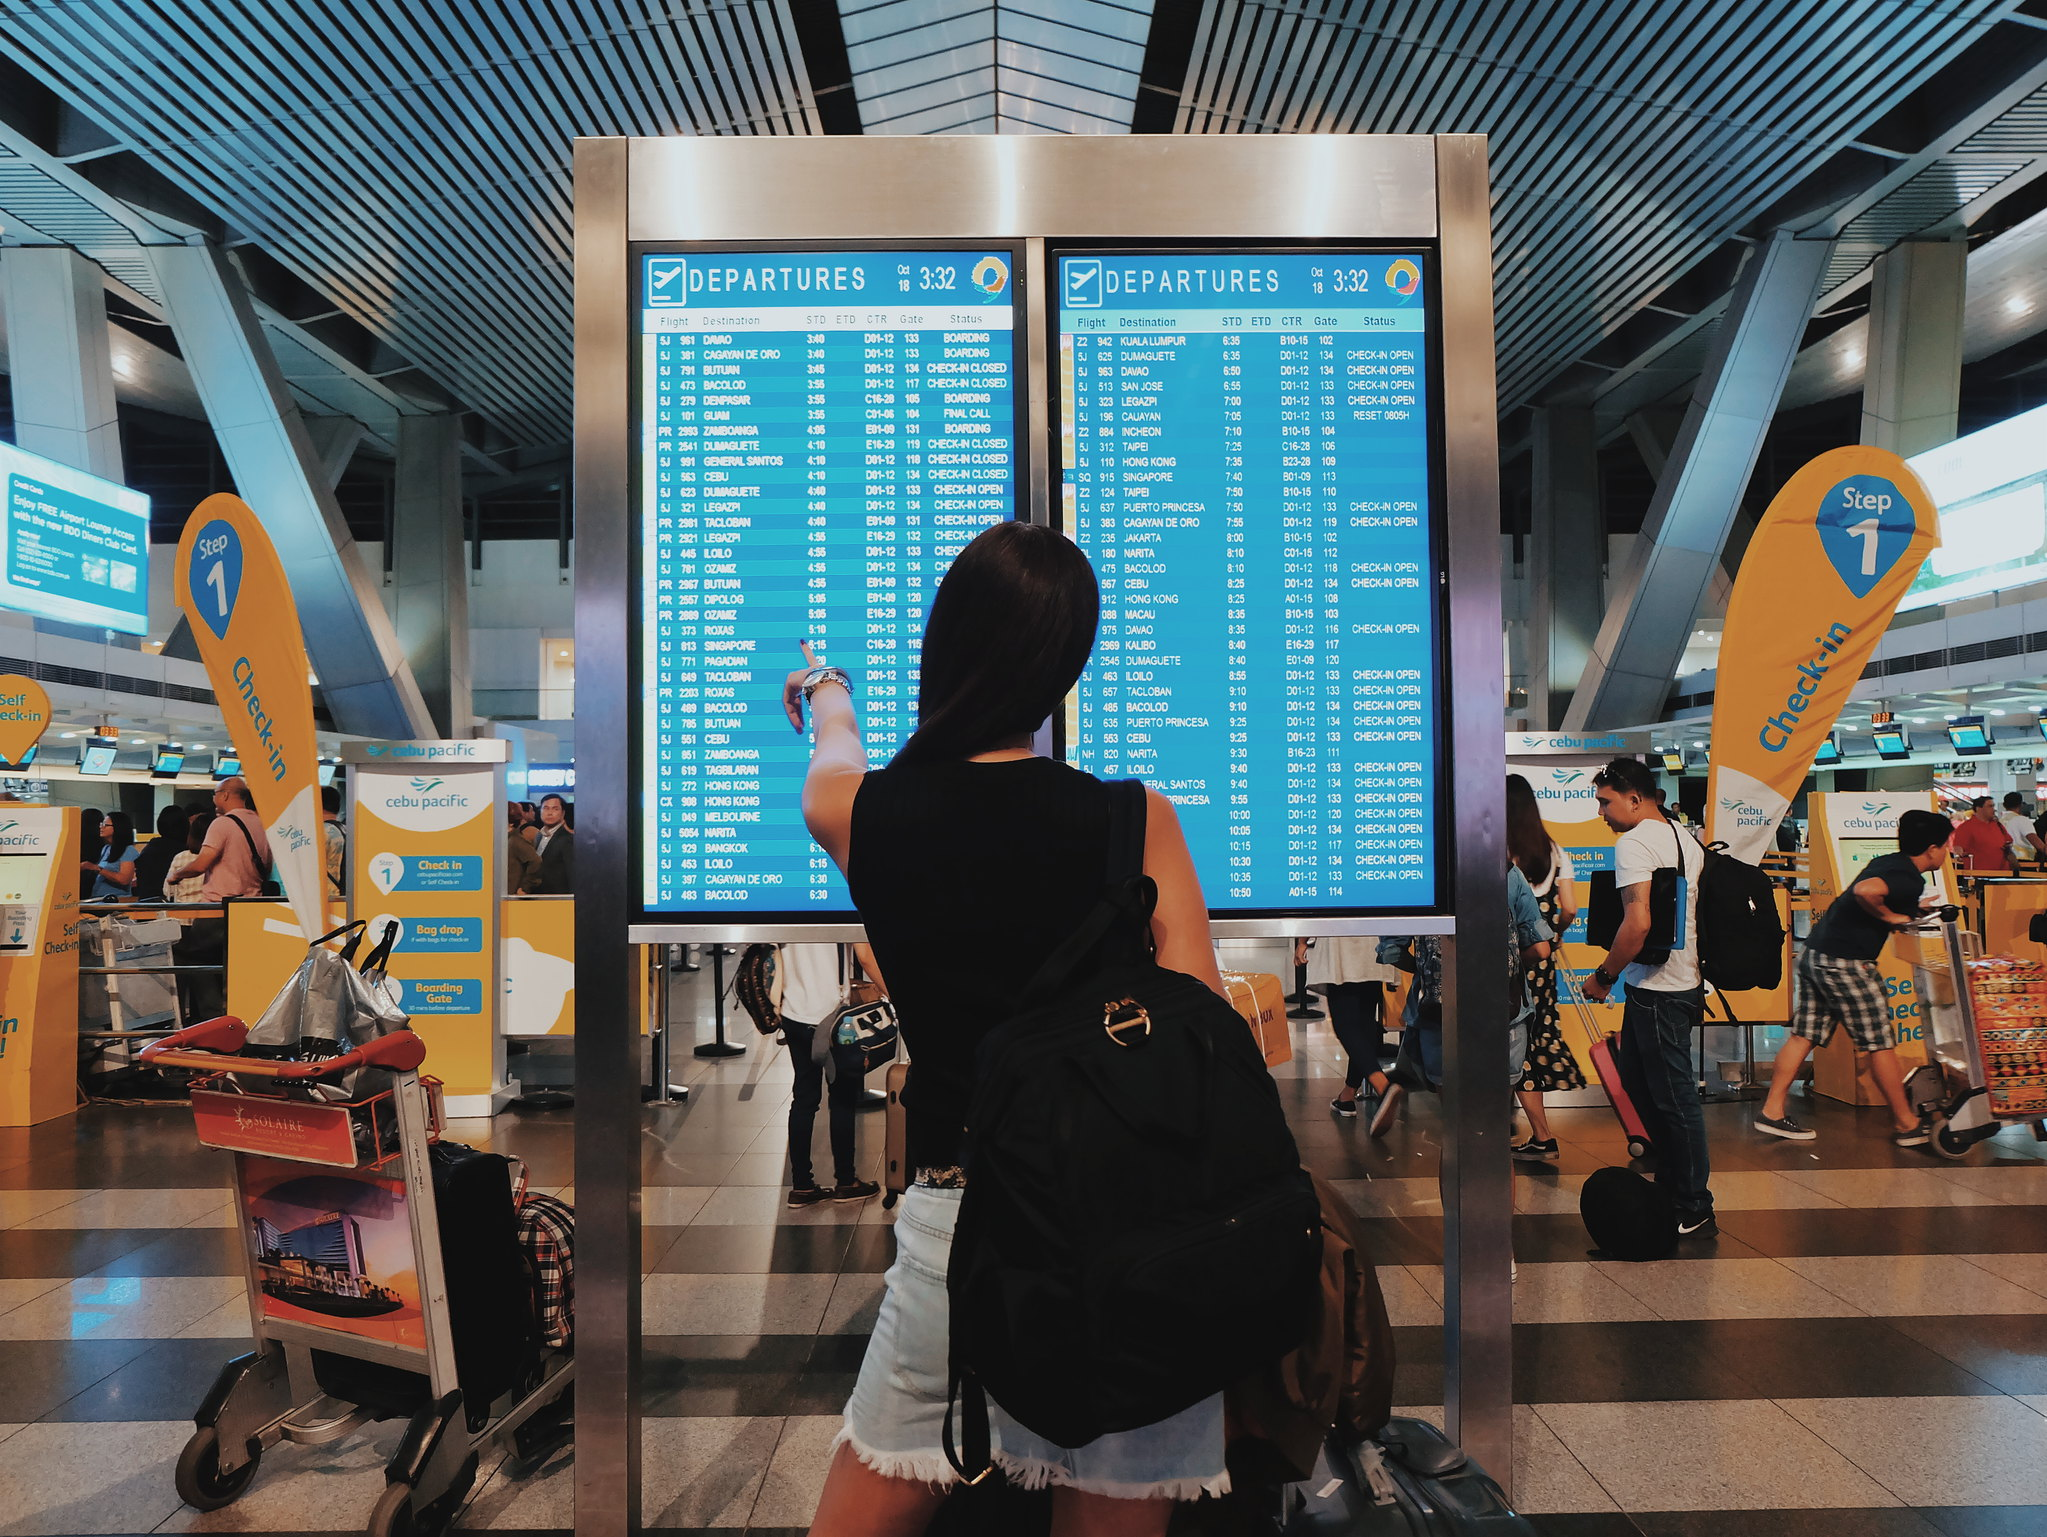 10 Things to Do While Waiting for Your Flight + Cebu Pacific's Travelers Lounge at RWM